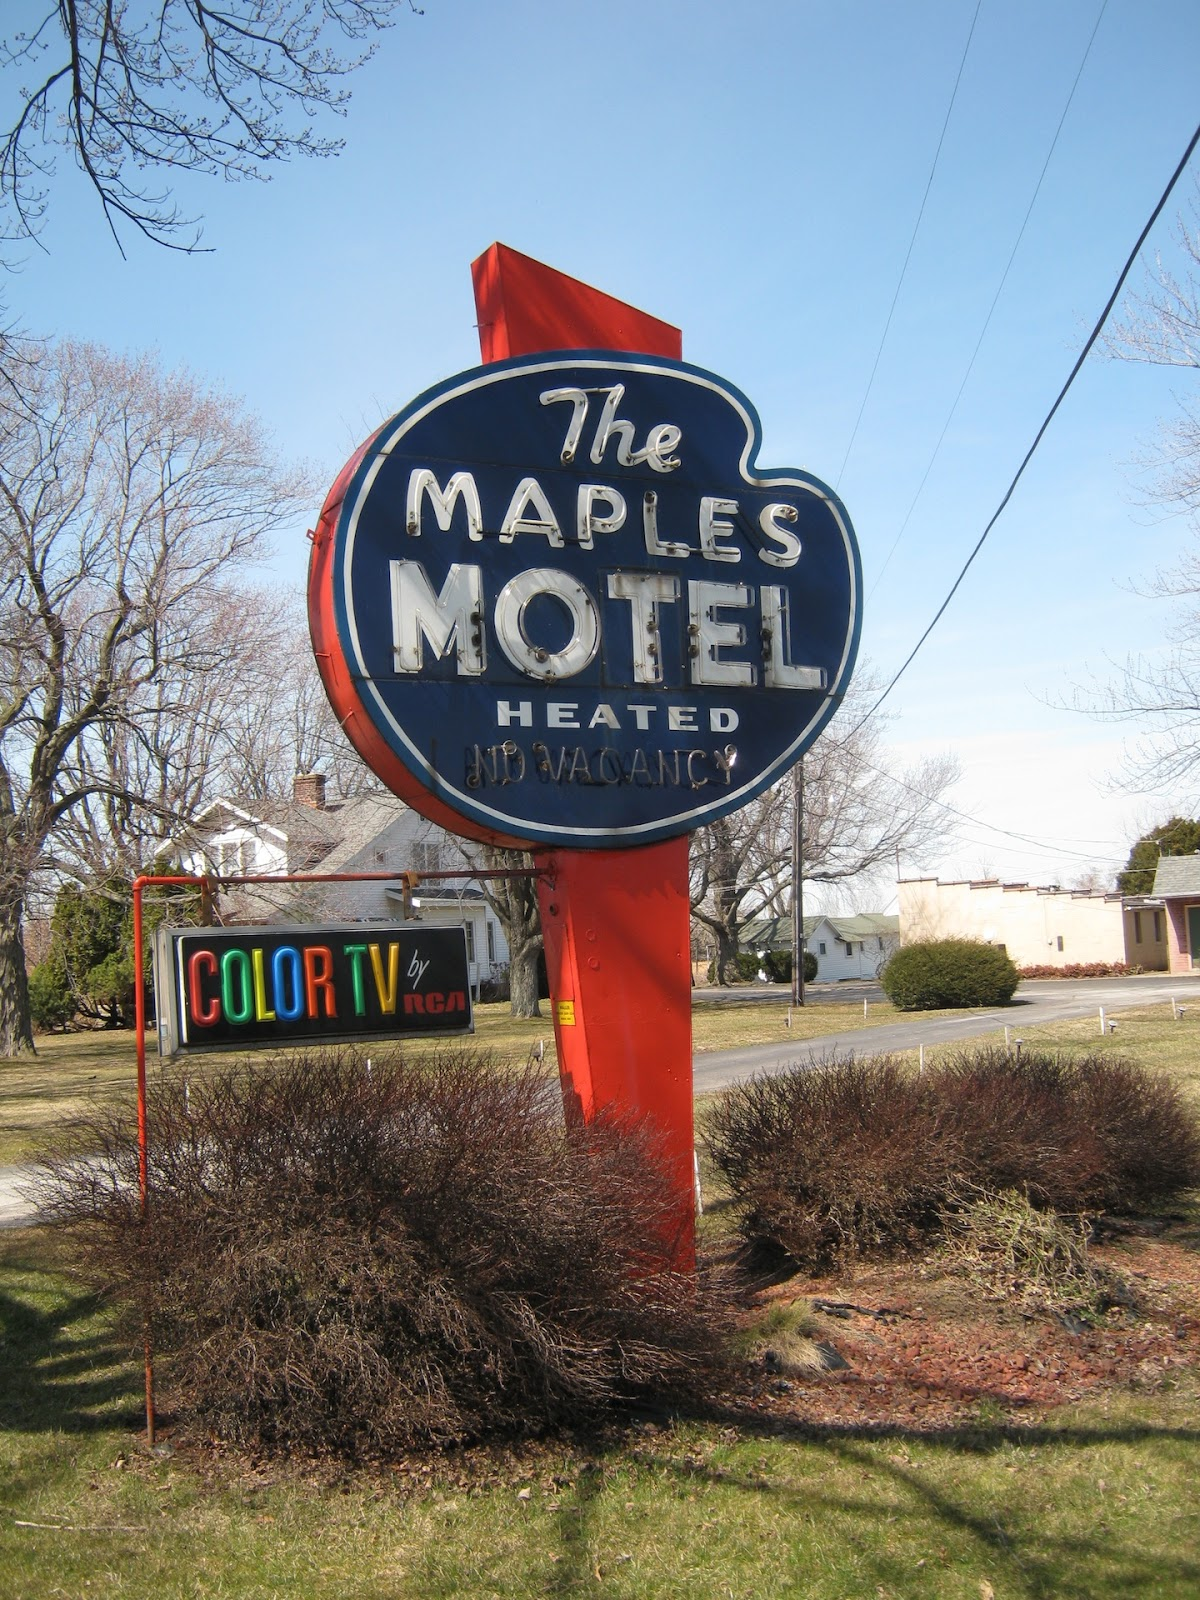 The Maples Motel - 4409 Cleveland Road West, Sandusky, Ohio U.S.A. - 2013